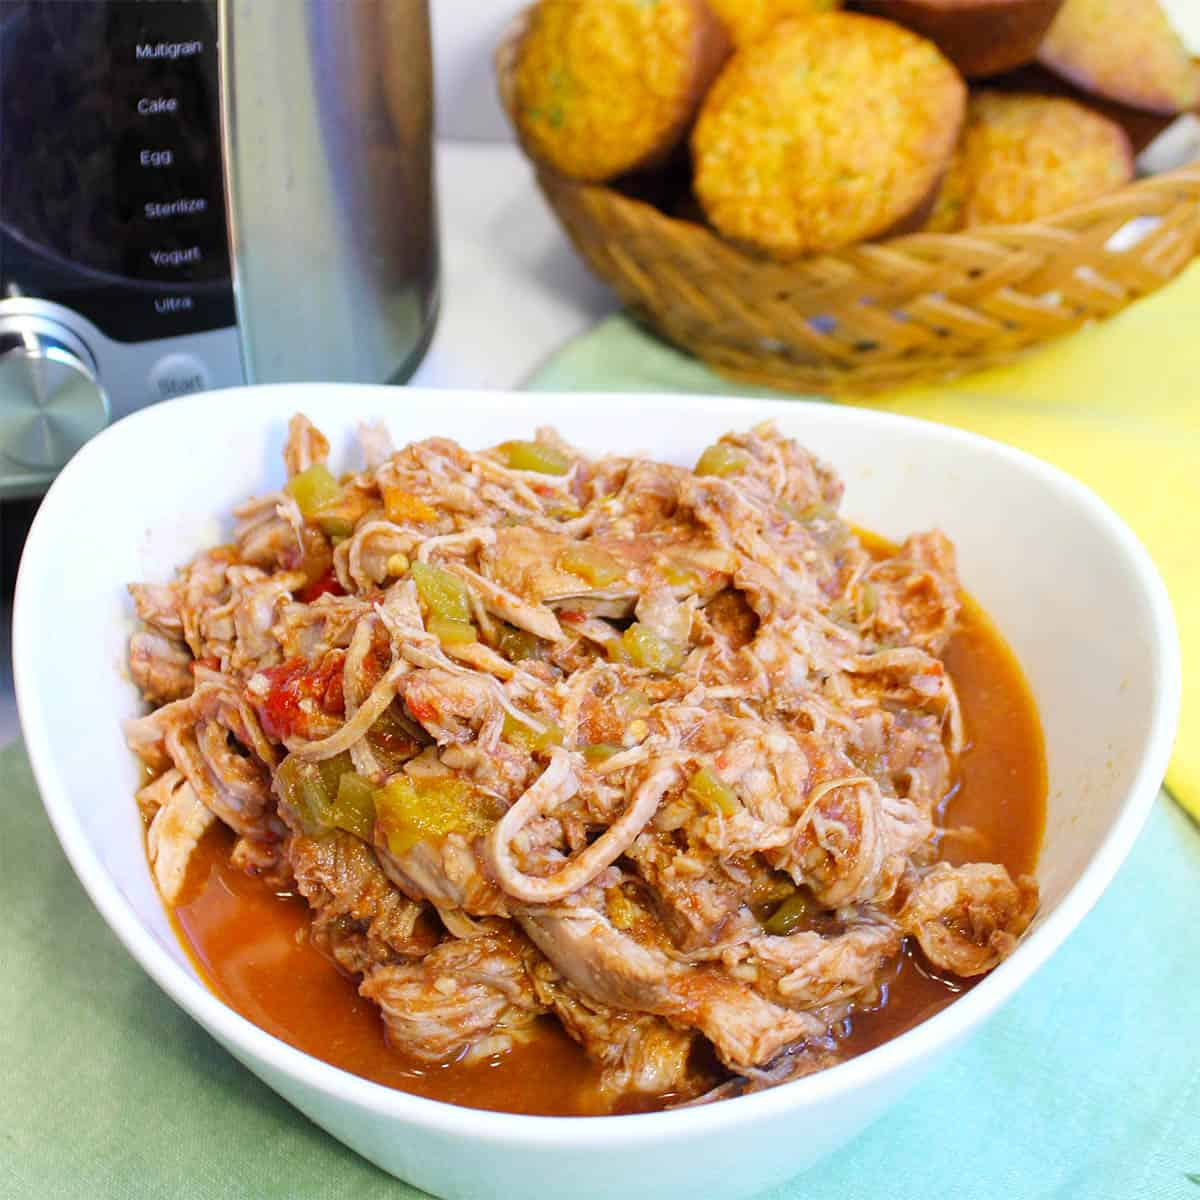 Cola Pulled Pork in bowl by Instant Pot and corn muffins.